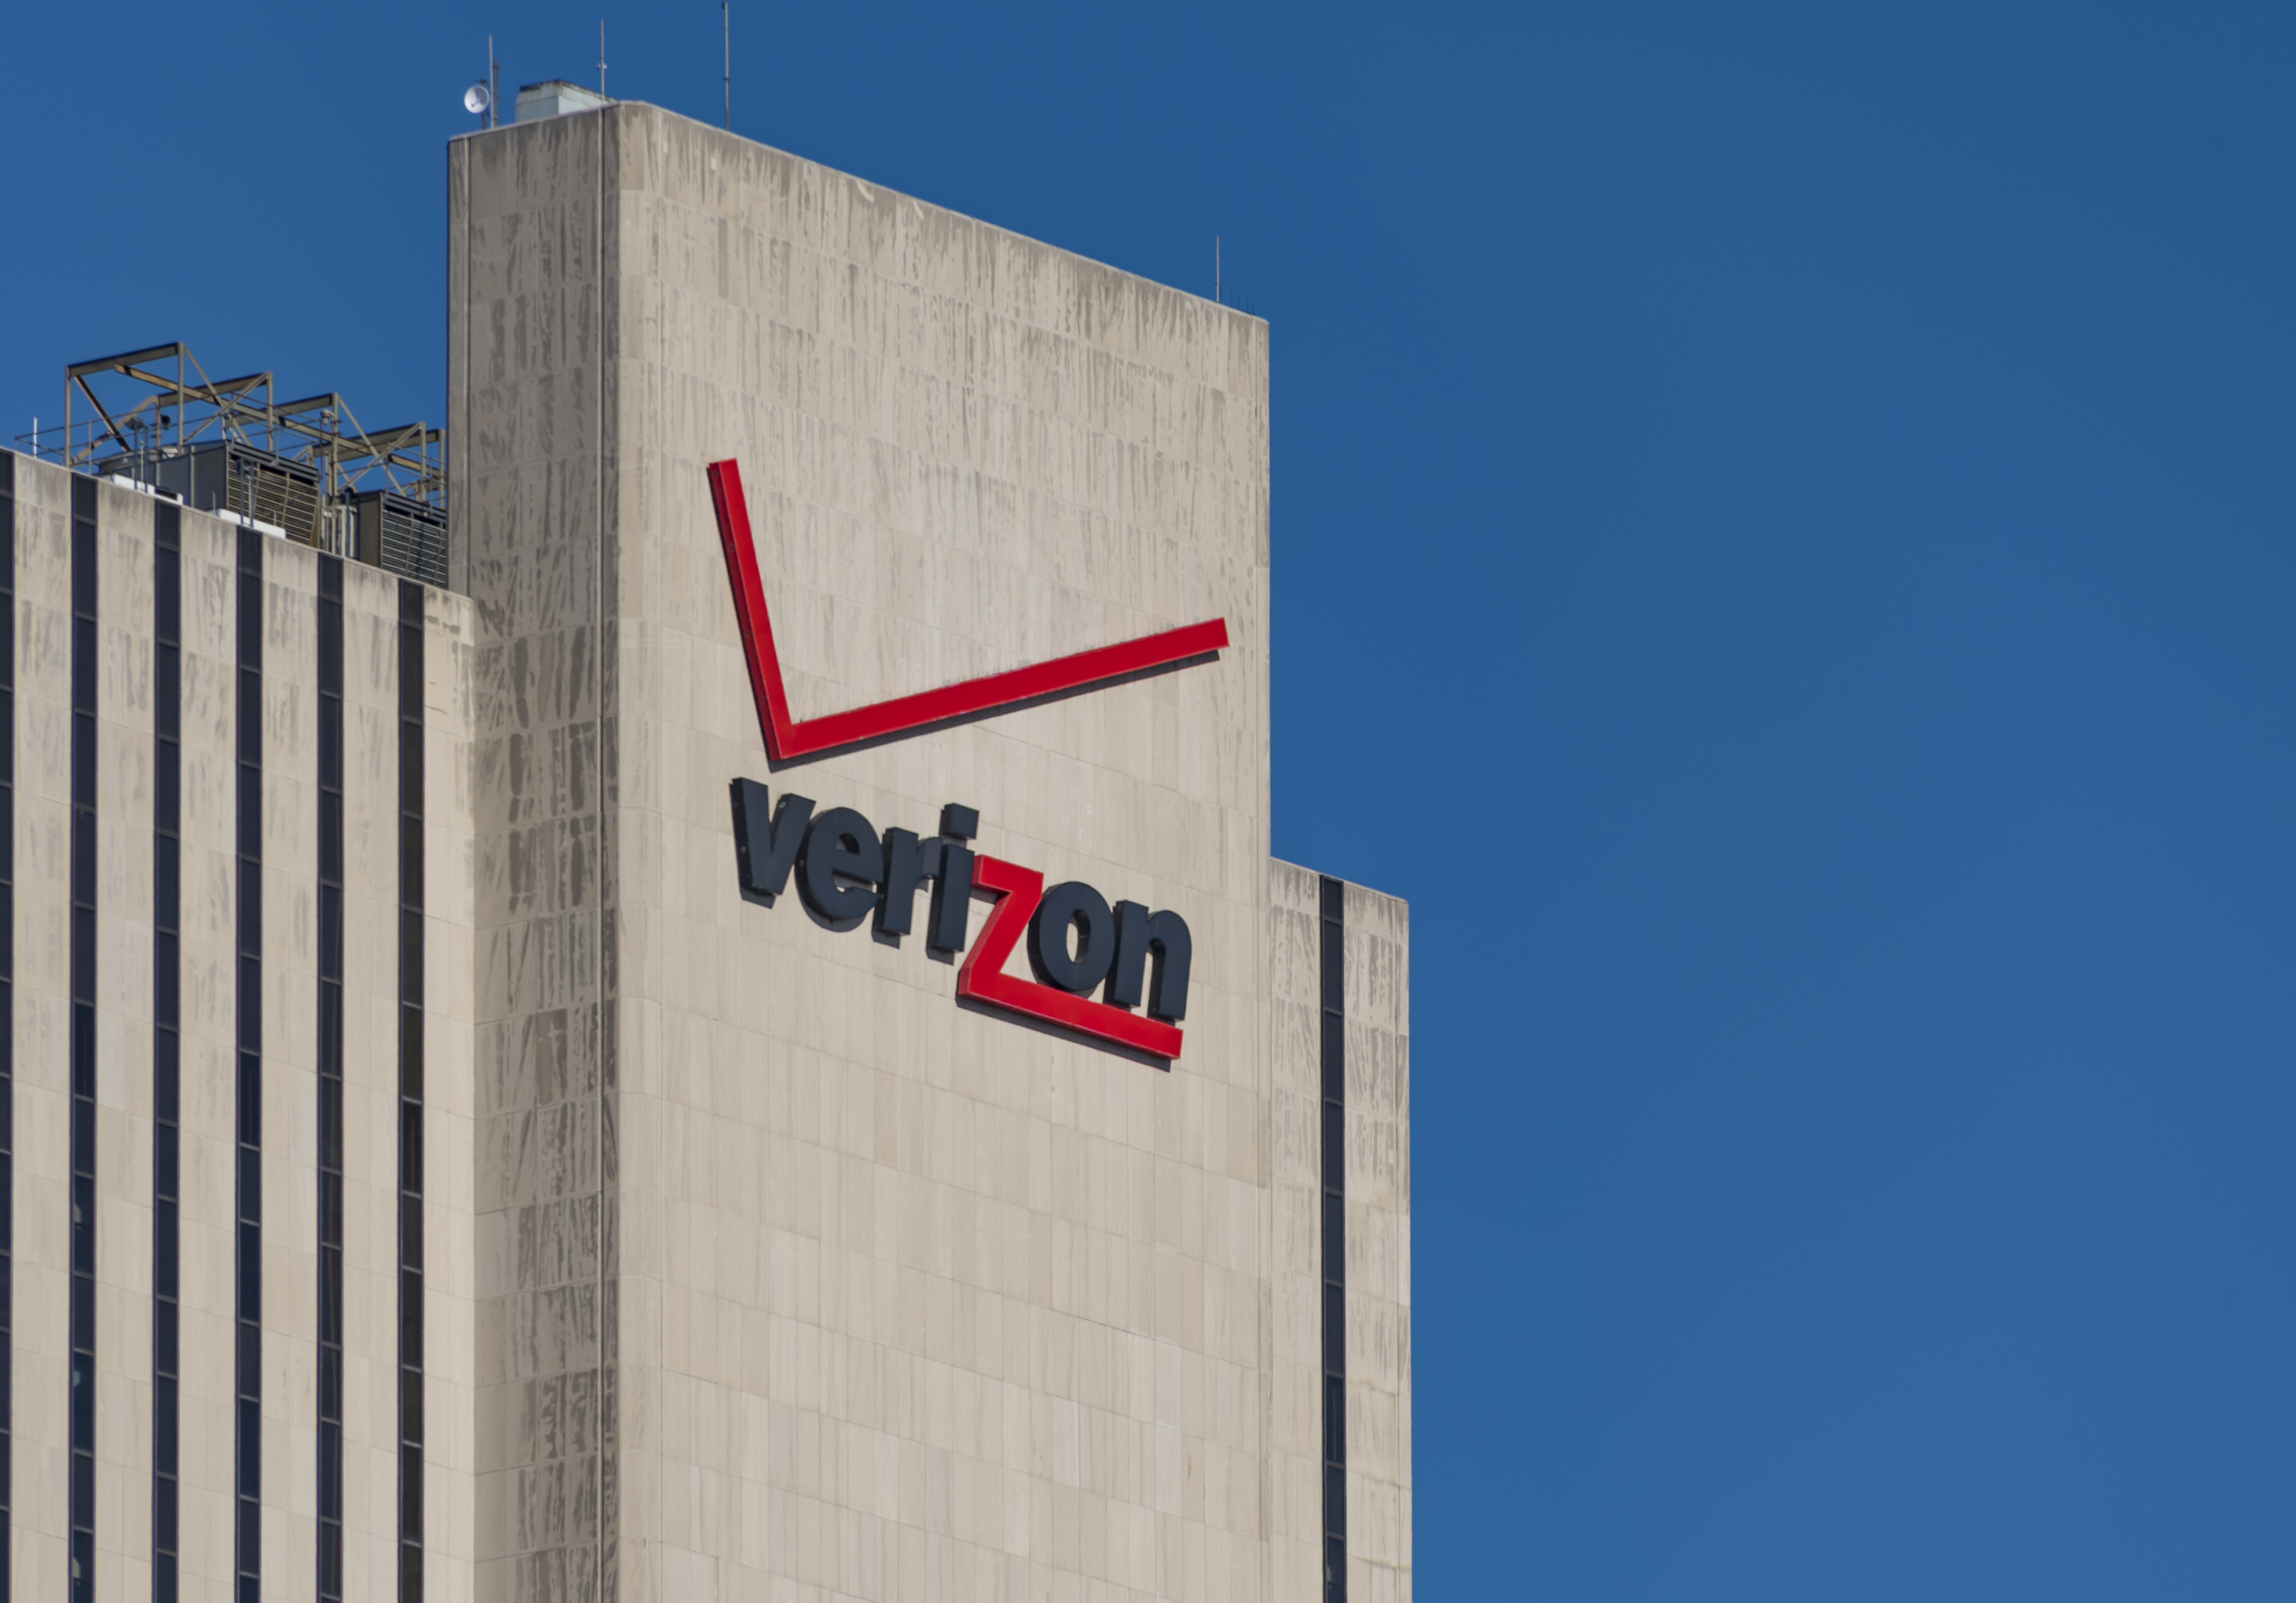 Verizon signage and logo on its building at 375 pearl street